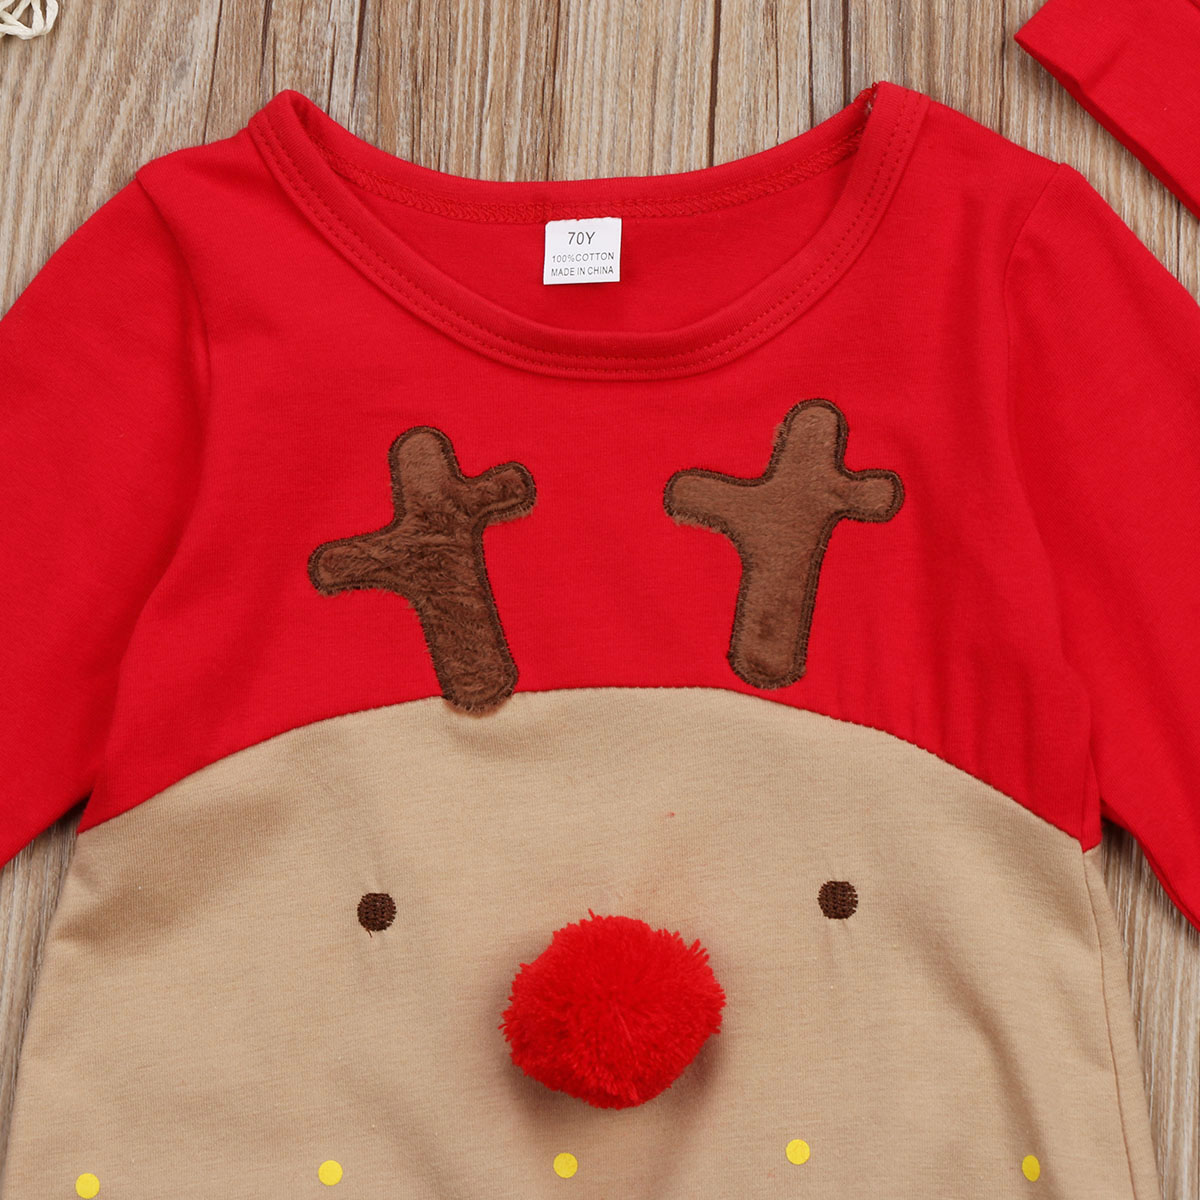 HTB1lcG5ahD1gK0jSZFsq6zldVXaj Emmababy 2Pcs Newborn Baby Boys Girl Christmas Rompers Long Sleeve Deer Romper Jumpsuit Hat Sleepwear Party Costume Baby Clothes